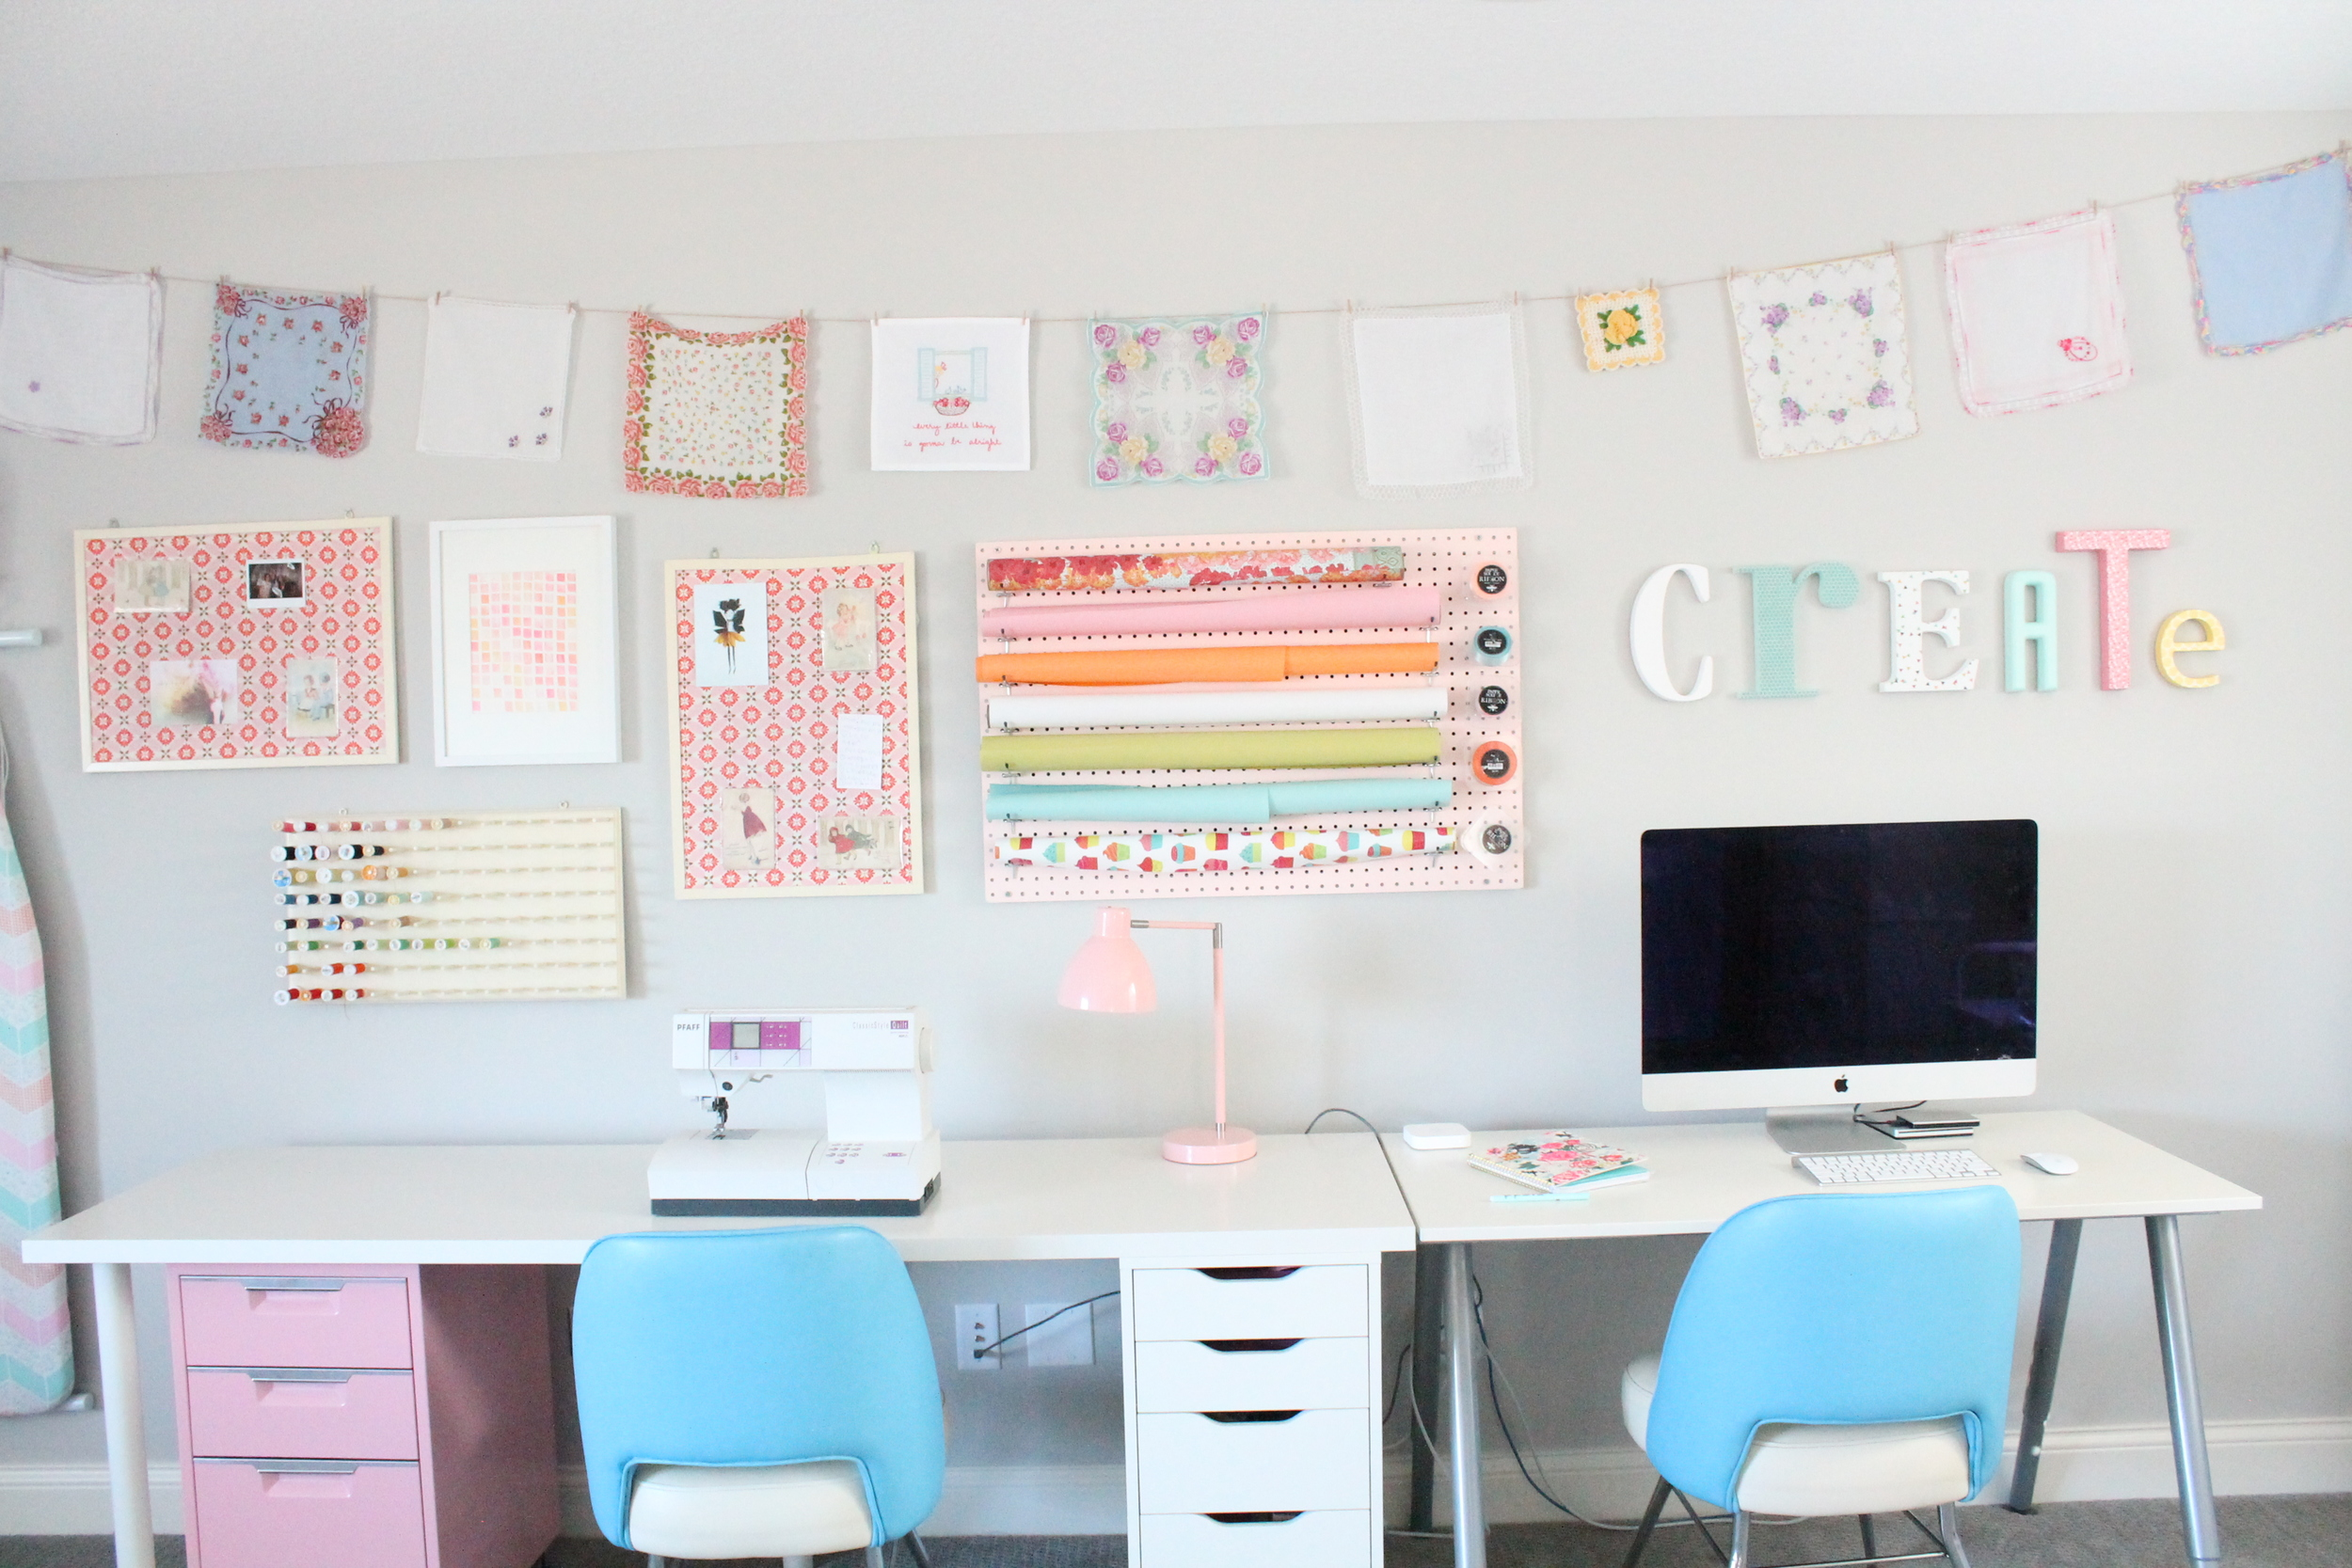 Family Craft Studio. Love how everyone in the family can share this creative space. A perfect craft room for sewing, scrapbooking, wrapping presents or just reading a book.